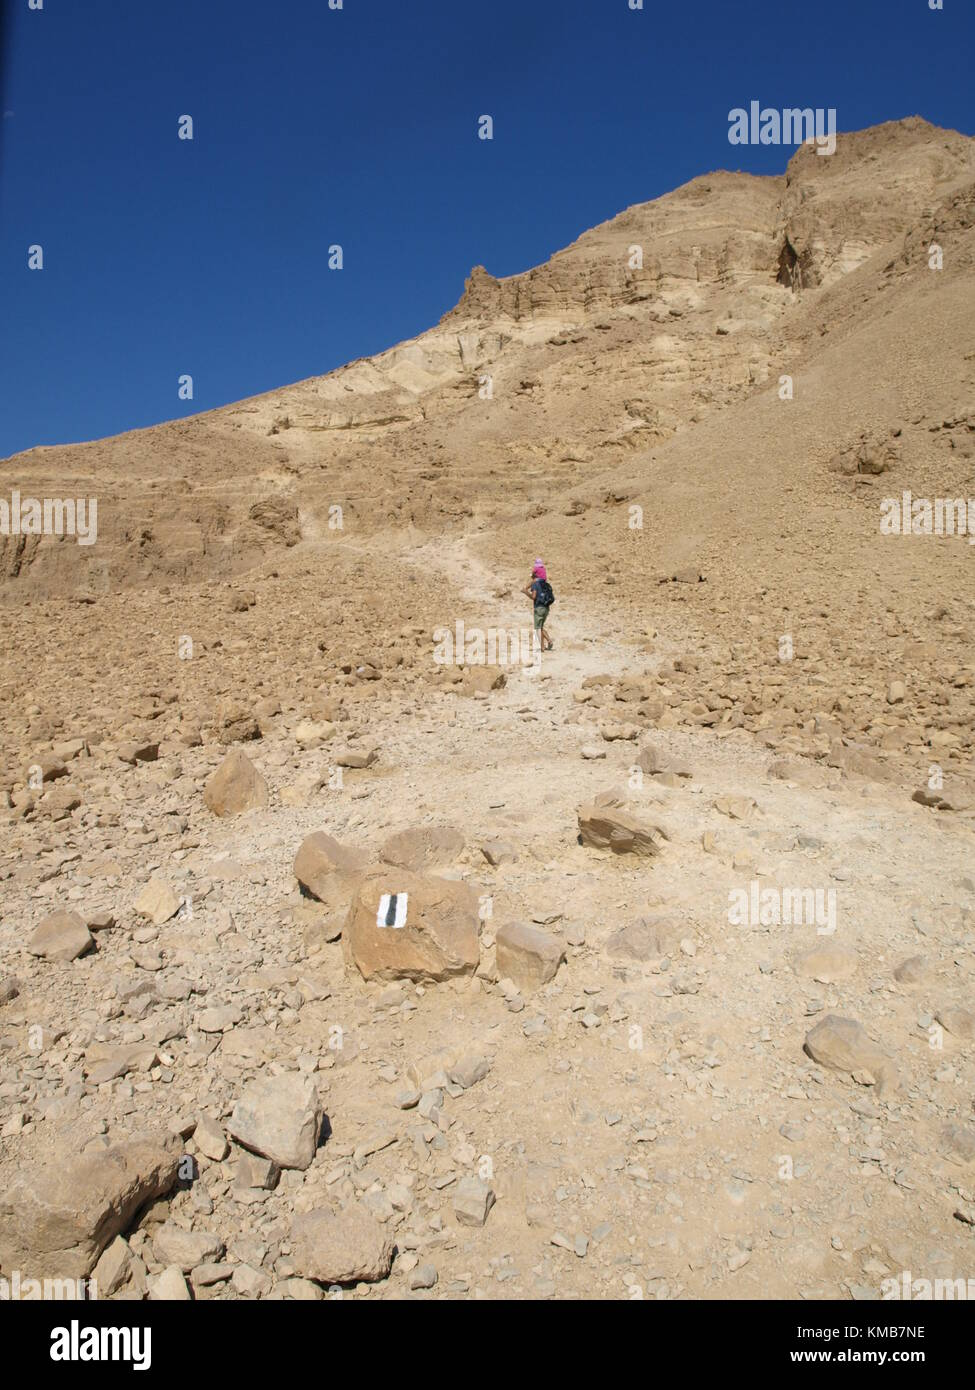 a hiking child going uphill a mountain Stock Photo